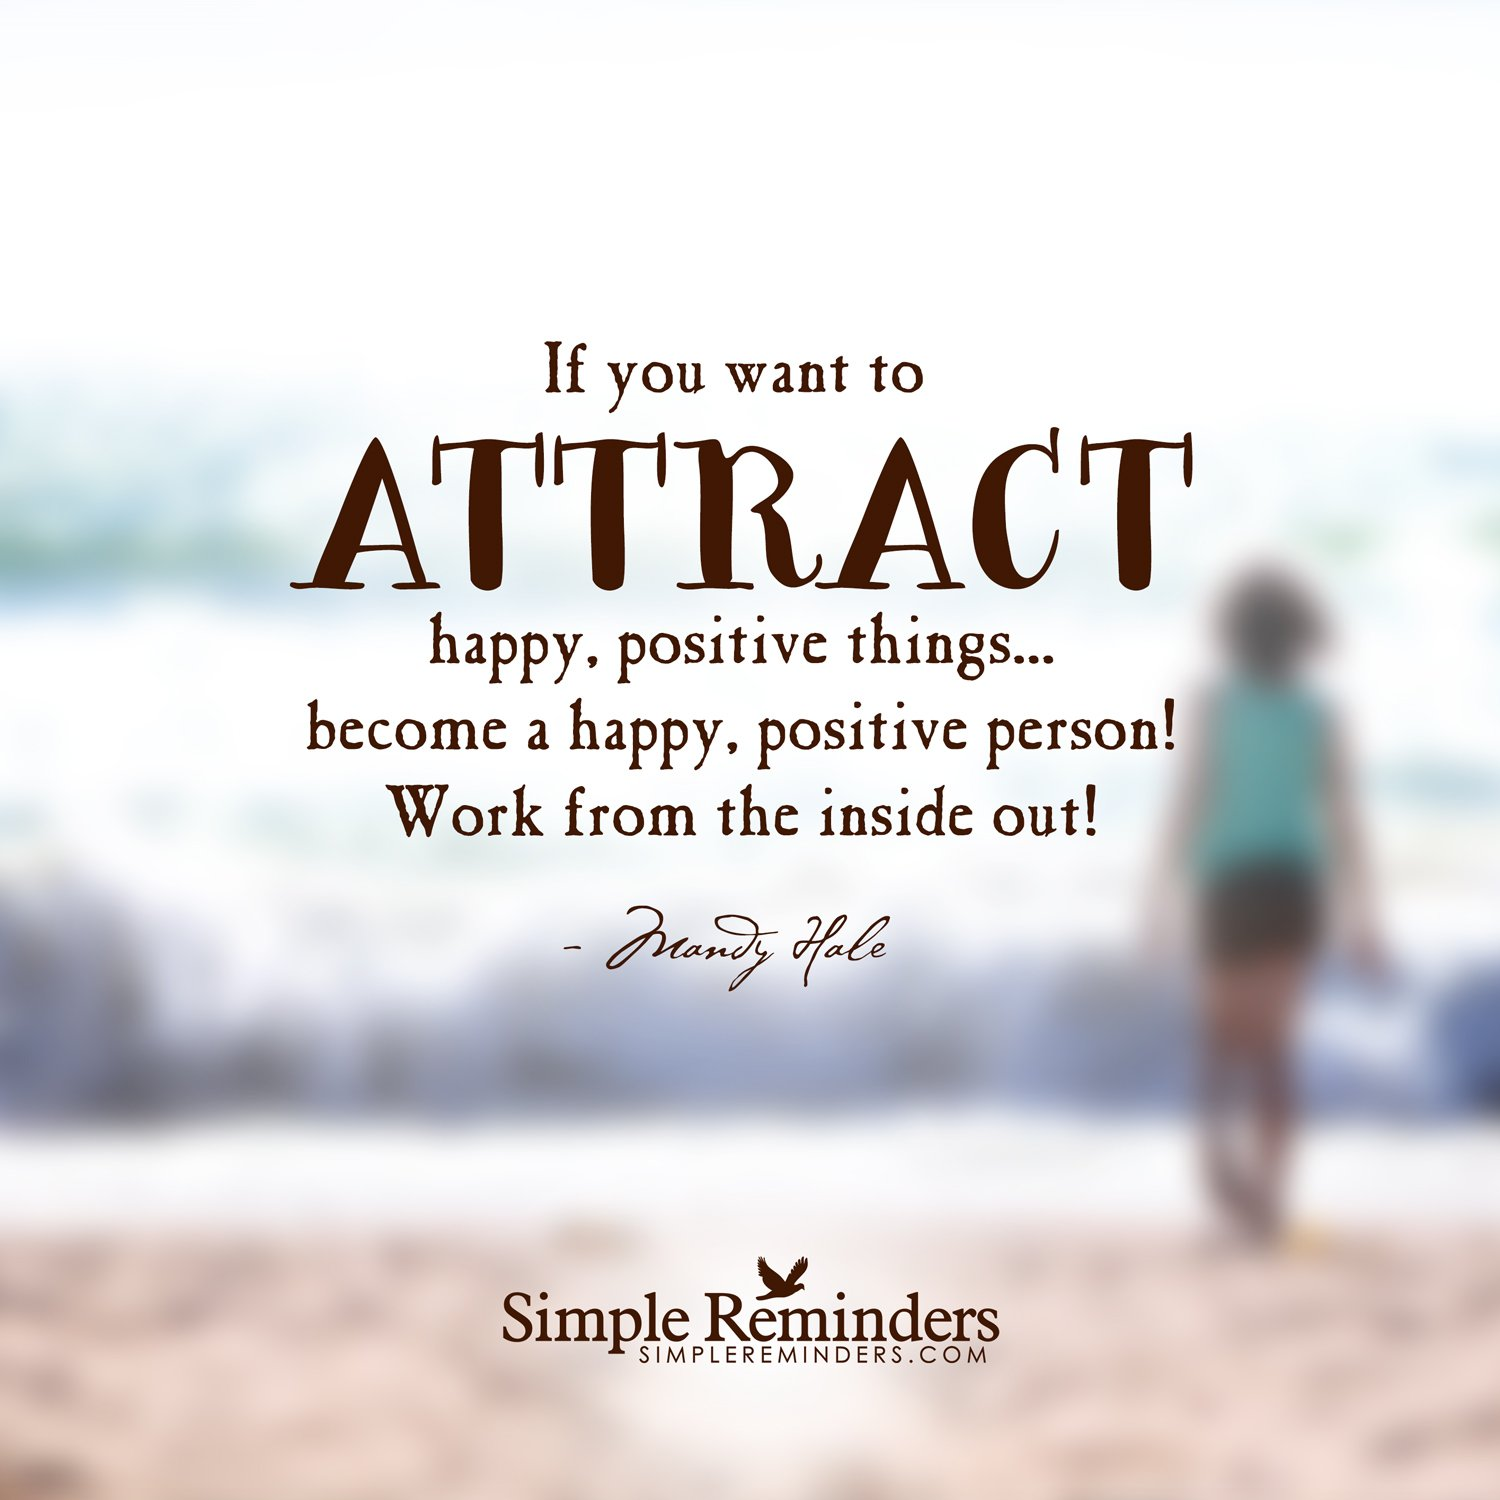 Quotes About Happiness With Pictures: Mandy Hale Quotes Happiness. QuotesGram